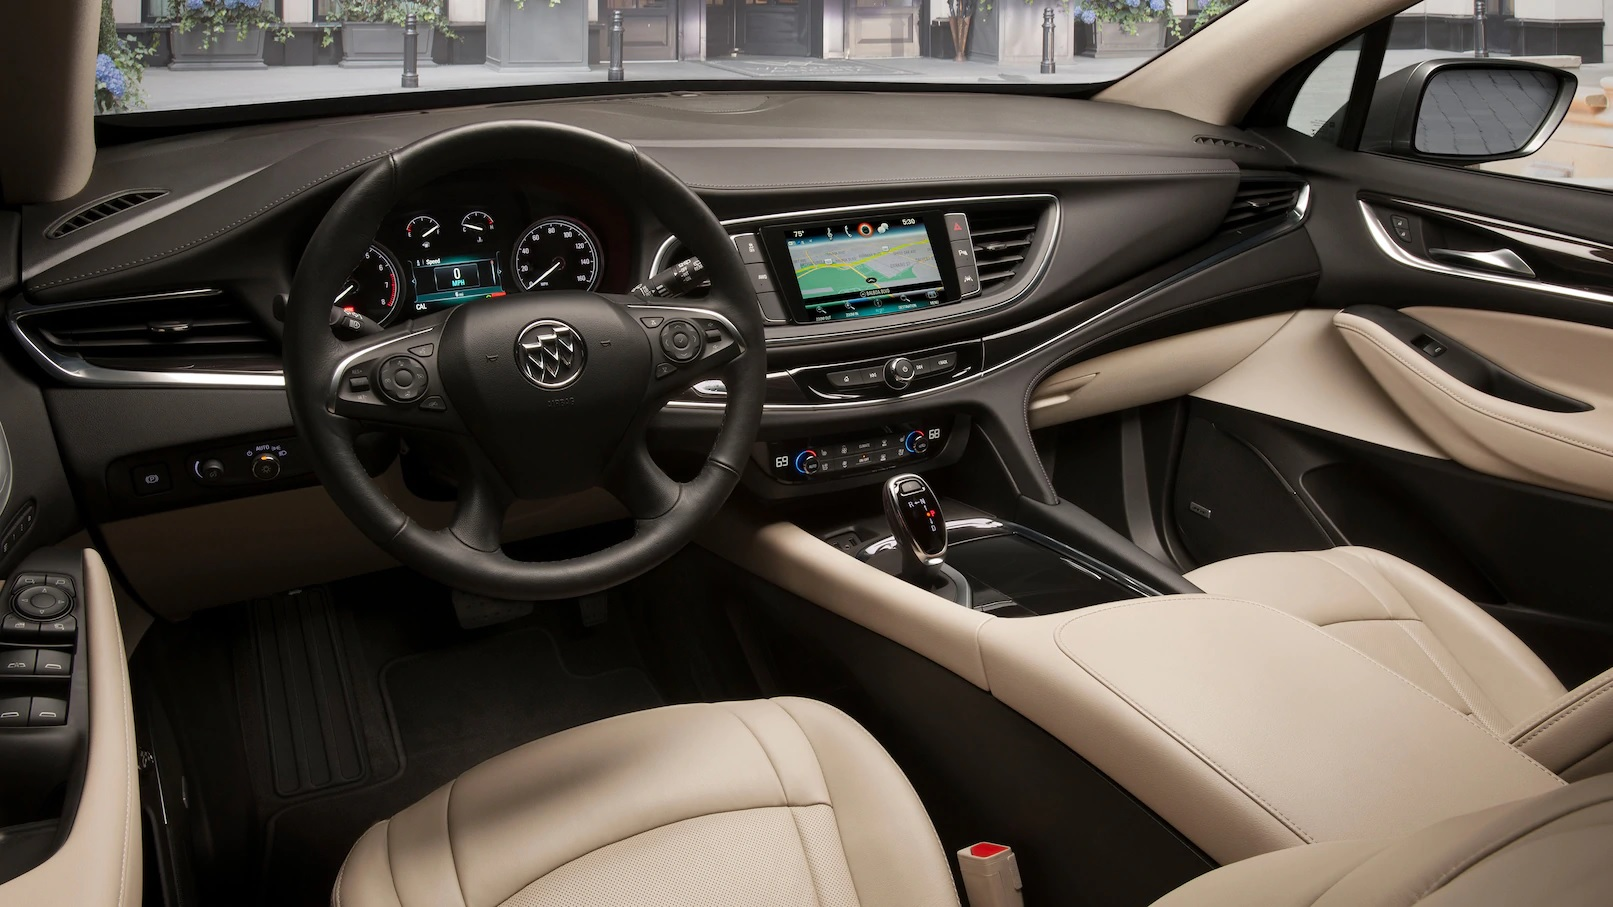 The Well-Protected Interior of the Buick Enclave